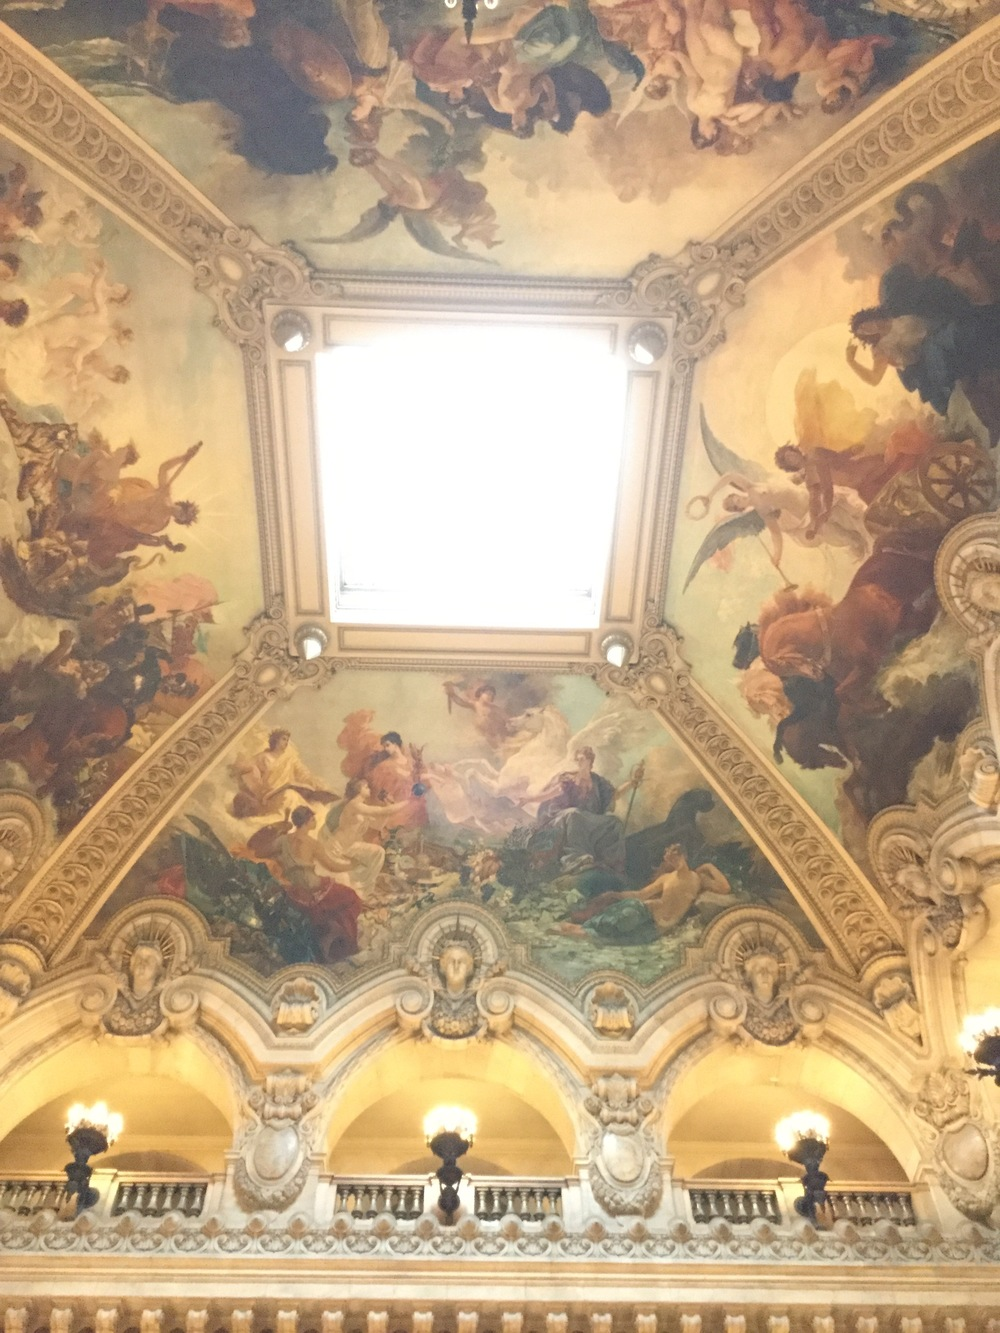 Ceiling of the Grand Escalier